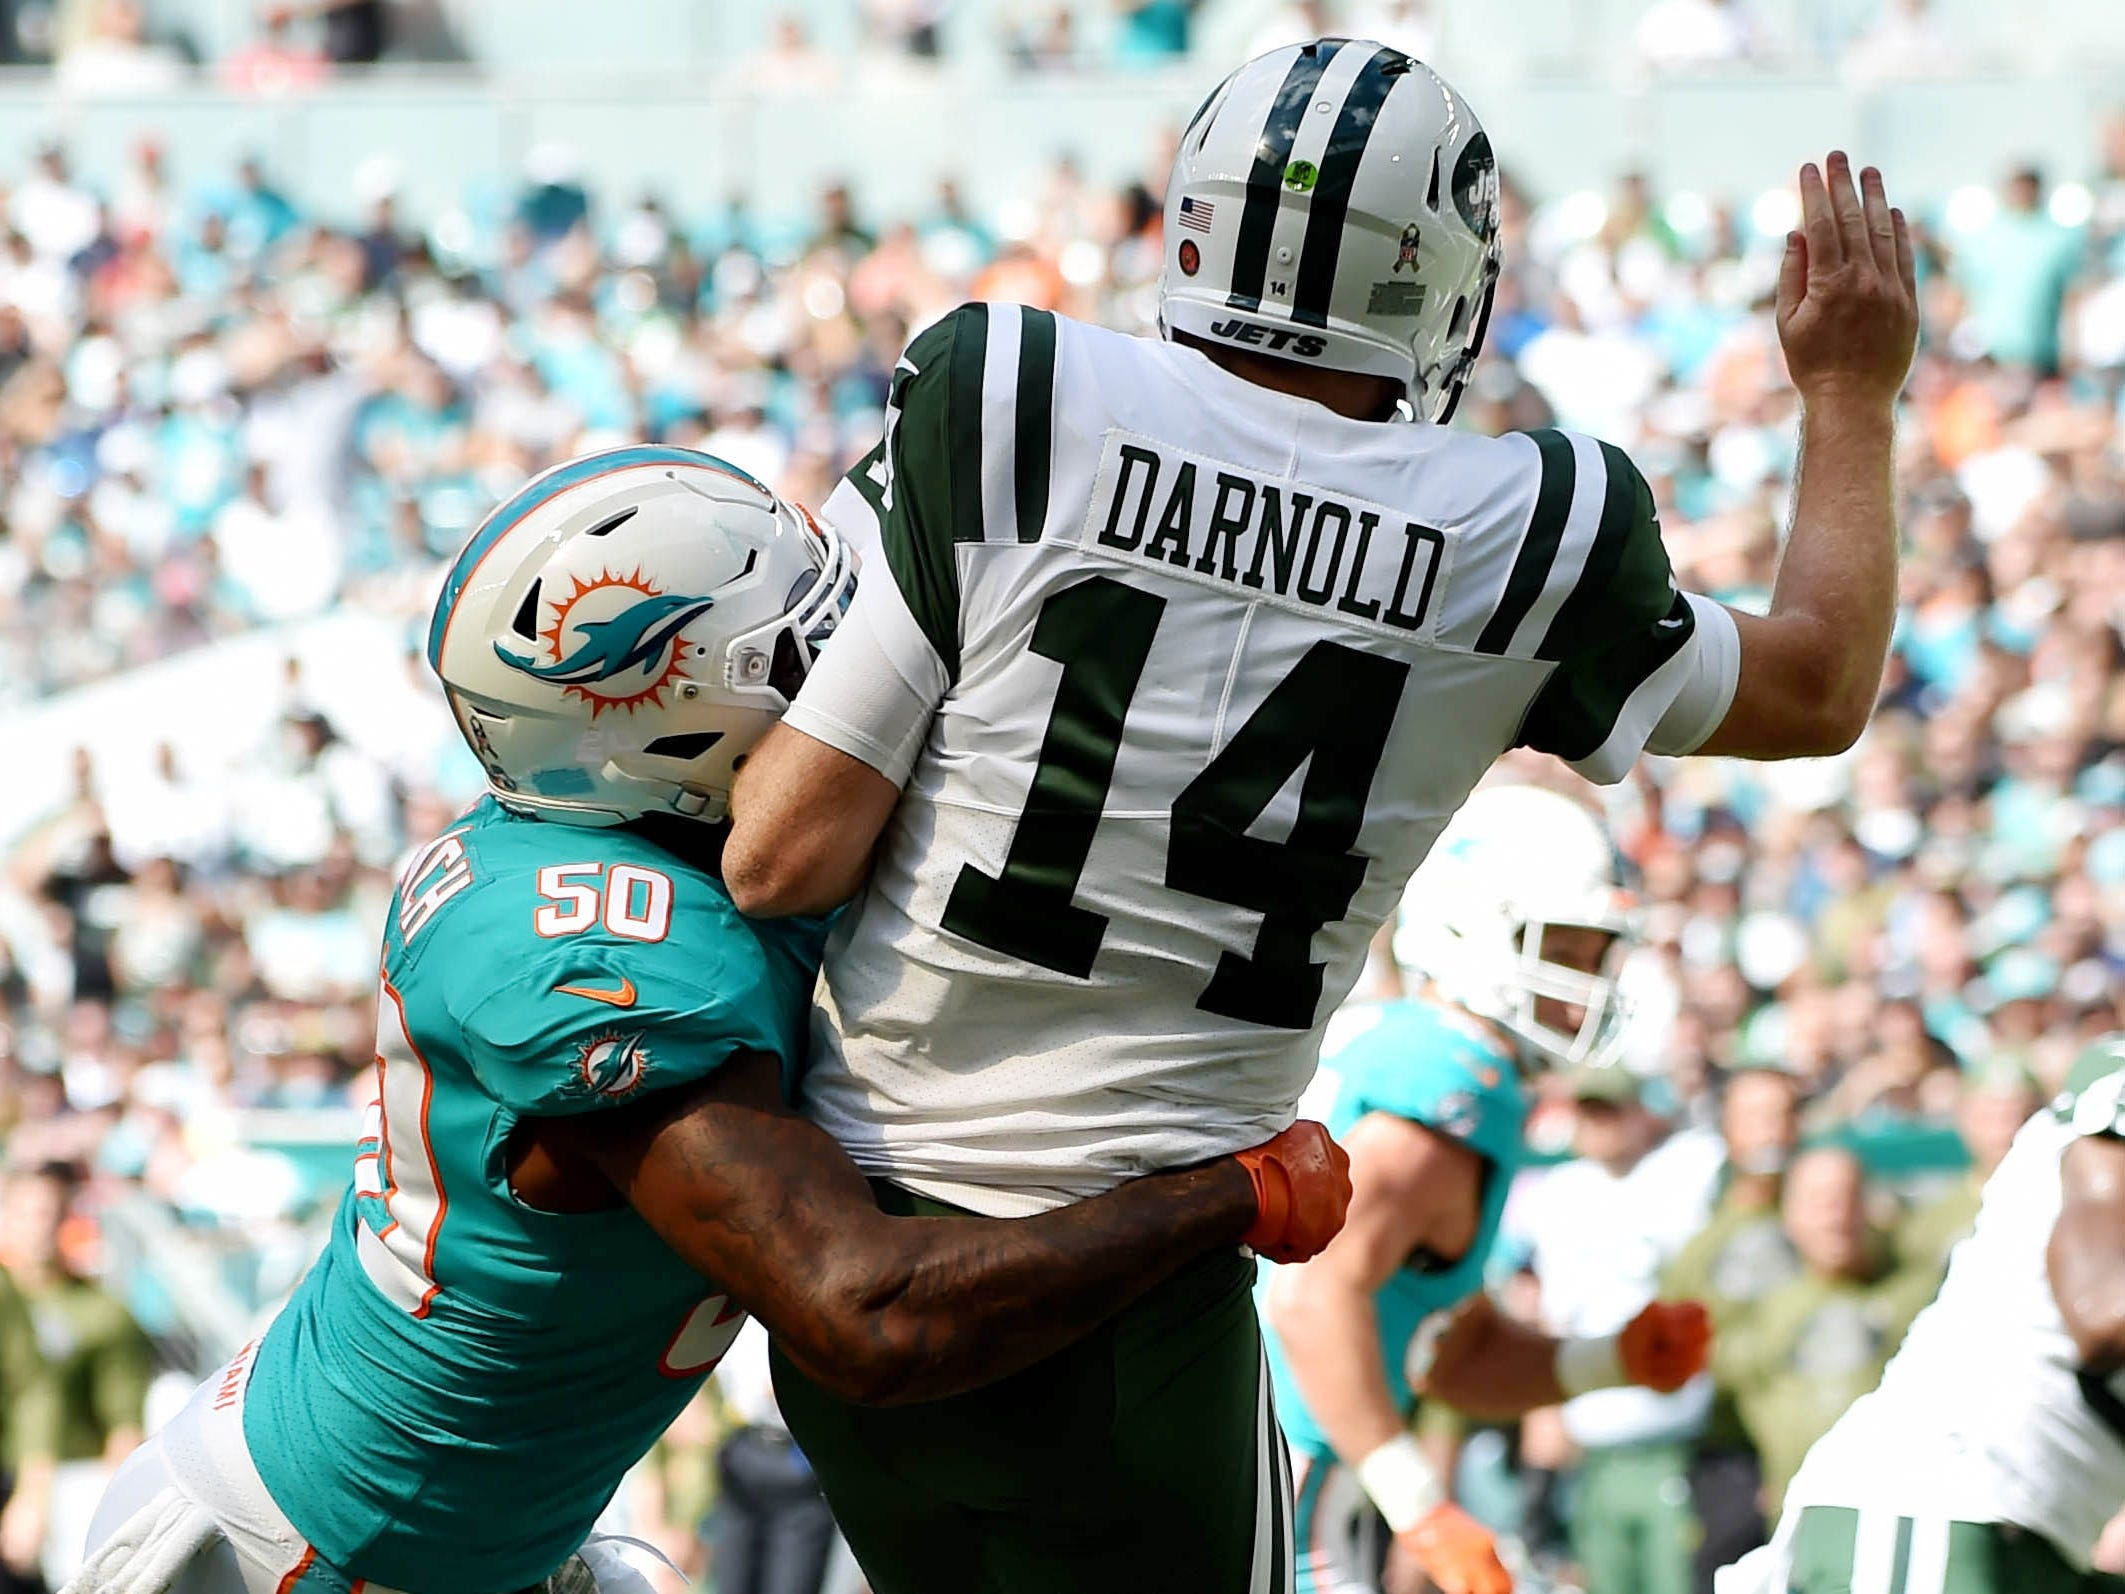 Miami Dolphins defensive end Andre Branch (50) hits New York Jets quarterback Sam Darnold (14) during the first half at Hard Rock Stadium.